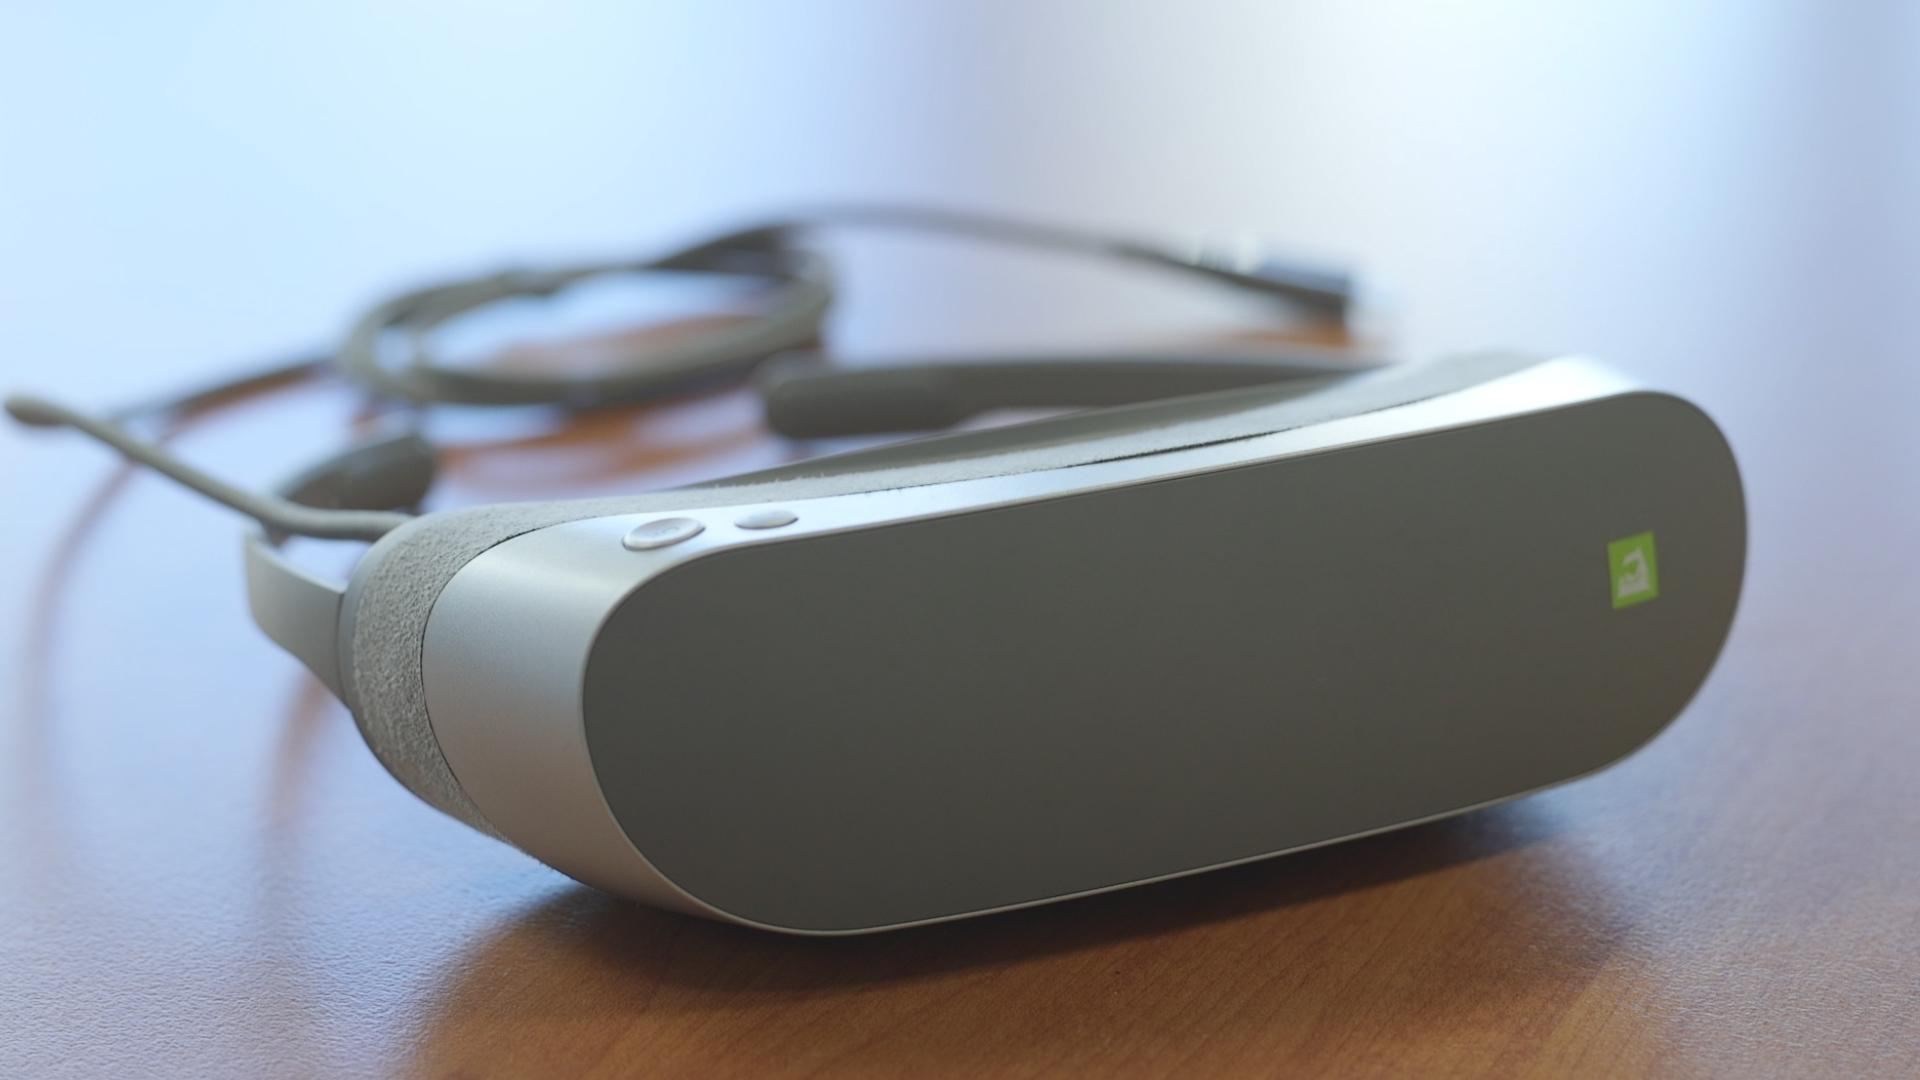 LG's 360 VR Headset Doesn't Dazzle When It Comes to Virtual Reality